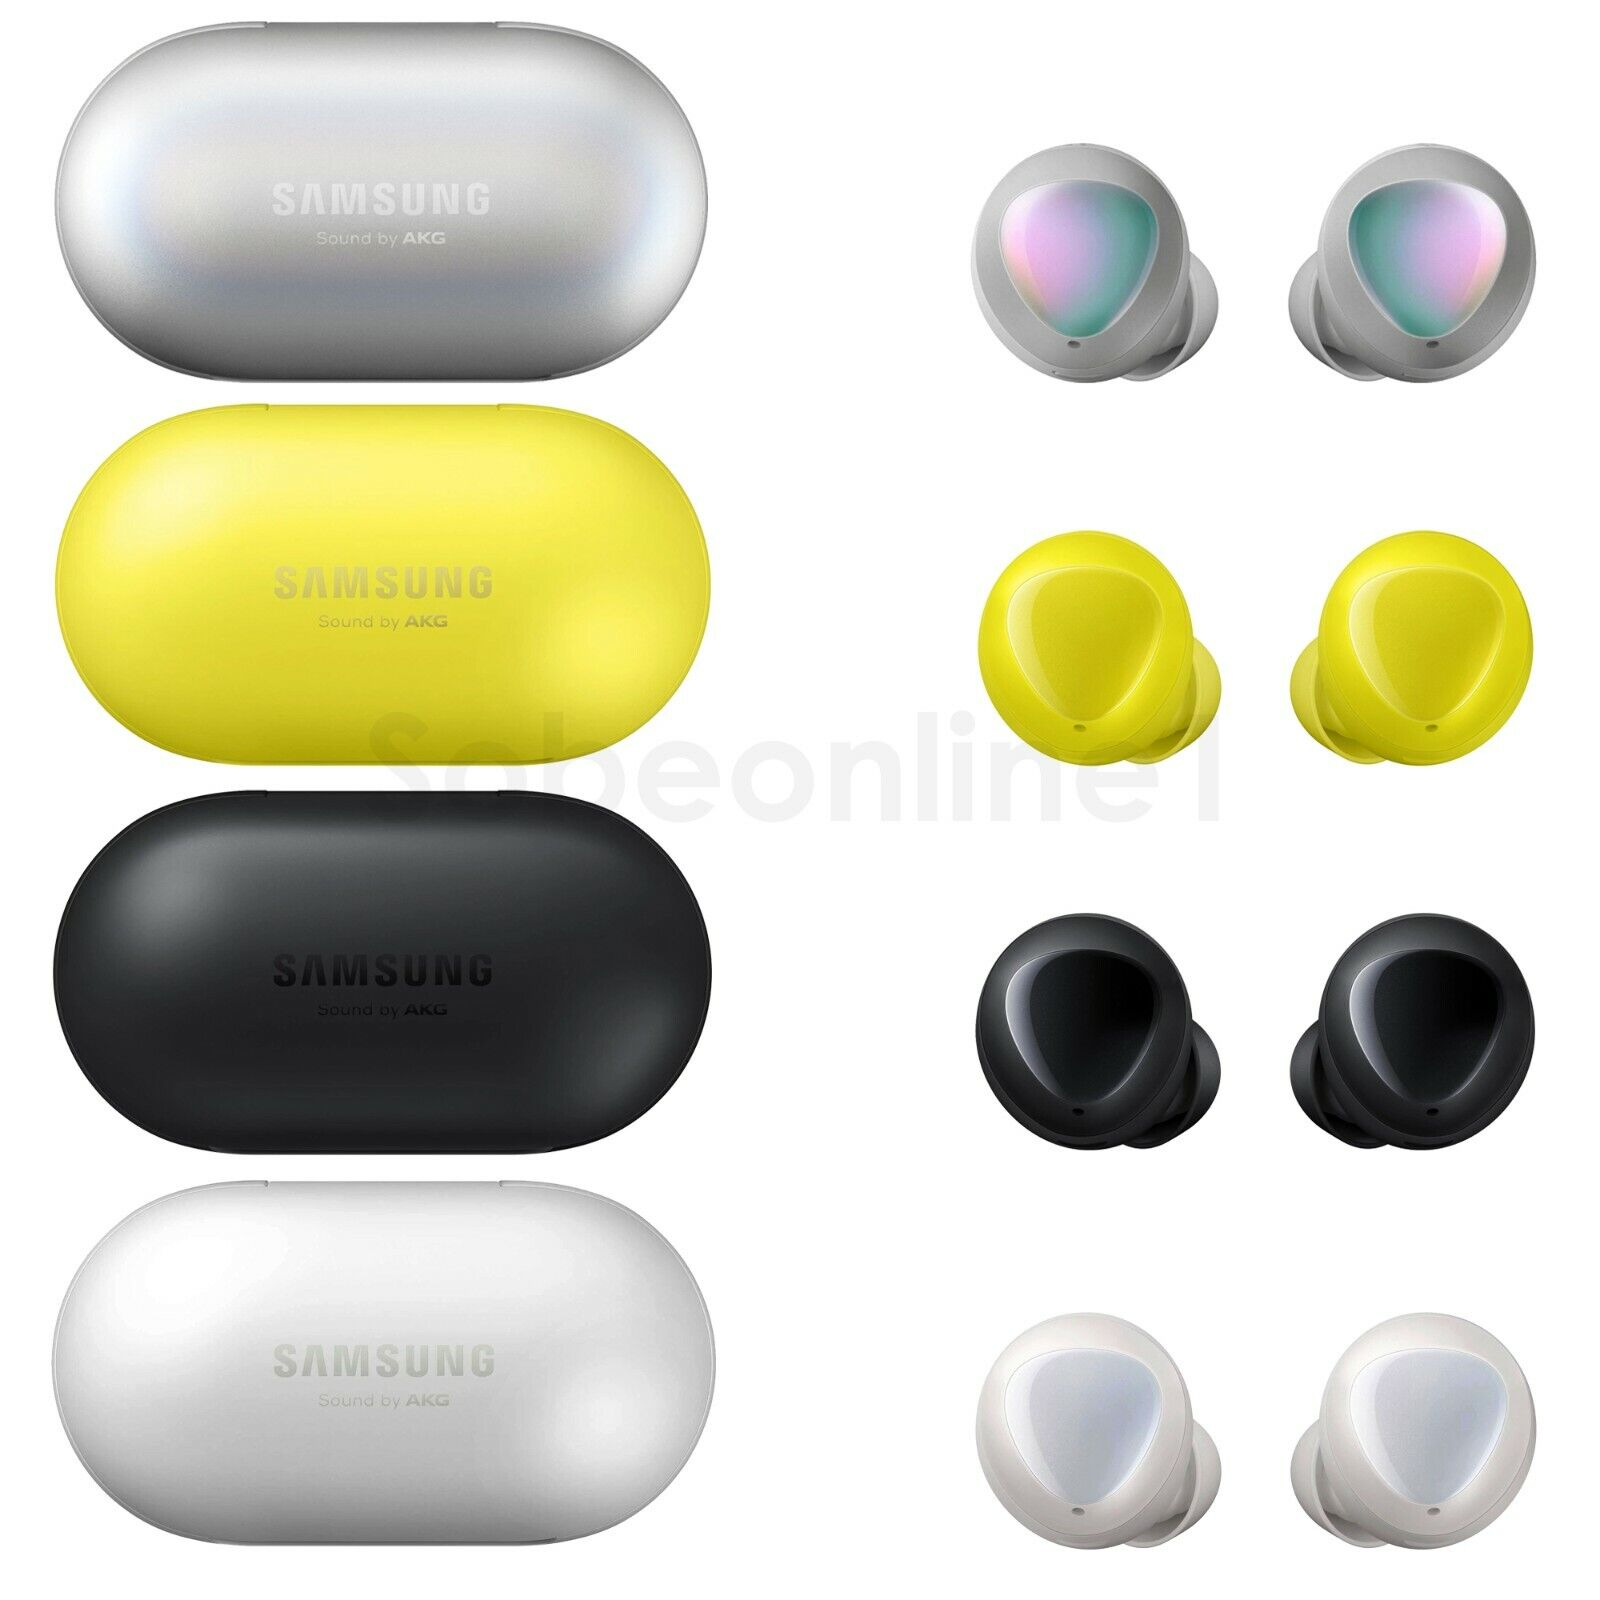 Soltekonline Samsung Galaxy Buds Sm R170 Bluetooth 5 0 Headset Black White Yellow Silver